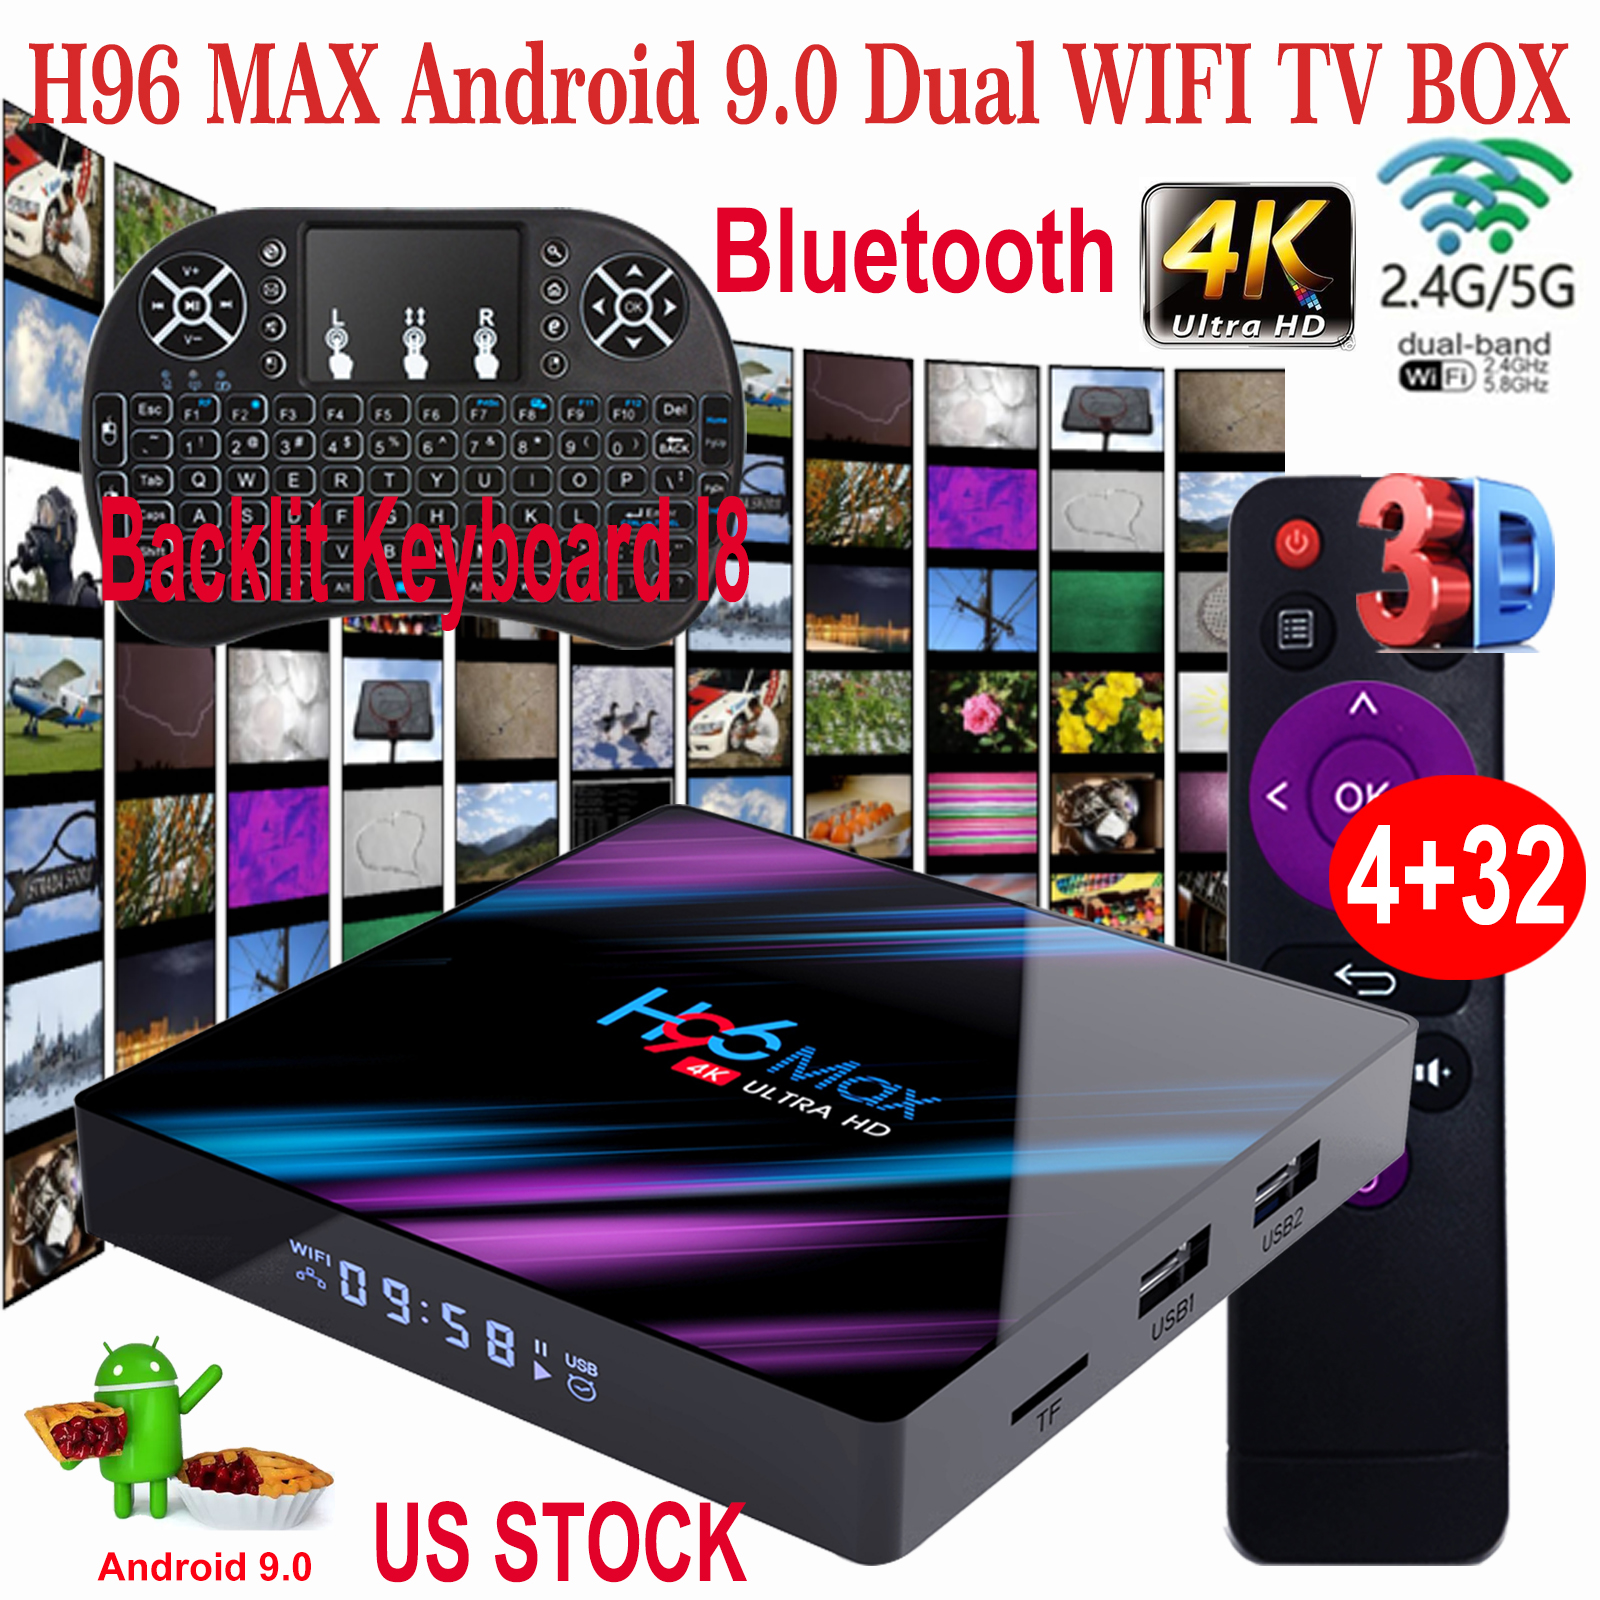 H96 MAX Android 9.0 US 4+32G Keyboard I8 TV BOX Dual WIFI BT4.0 Quad Core H.265 Featured